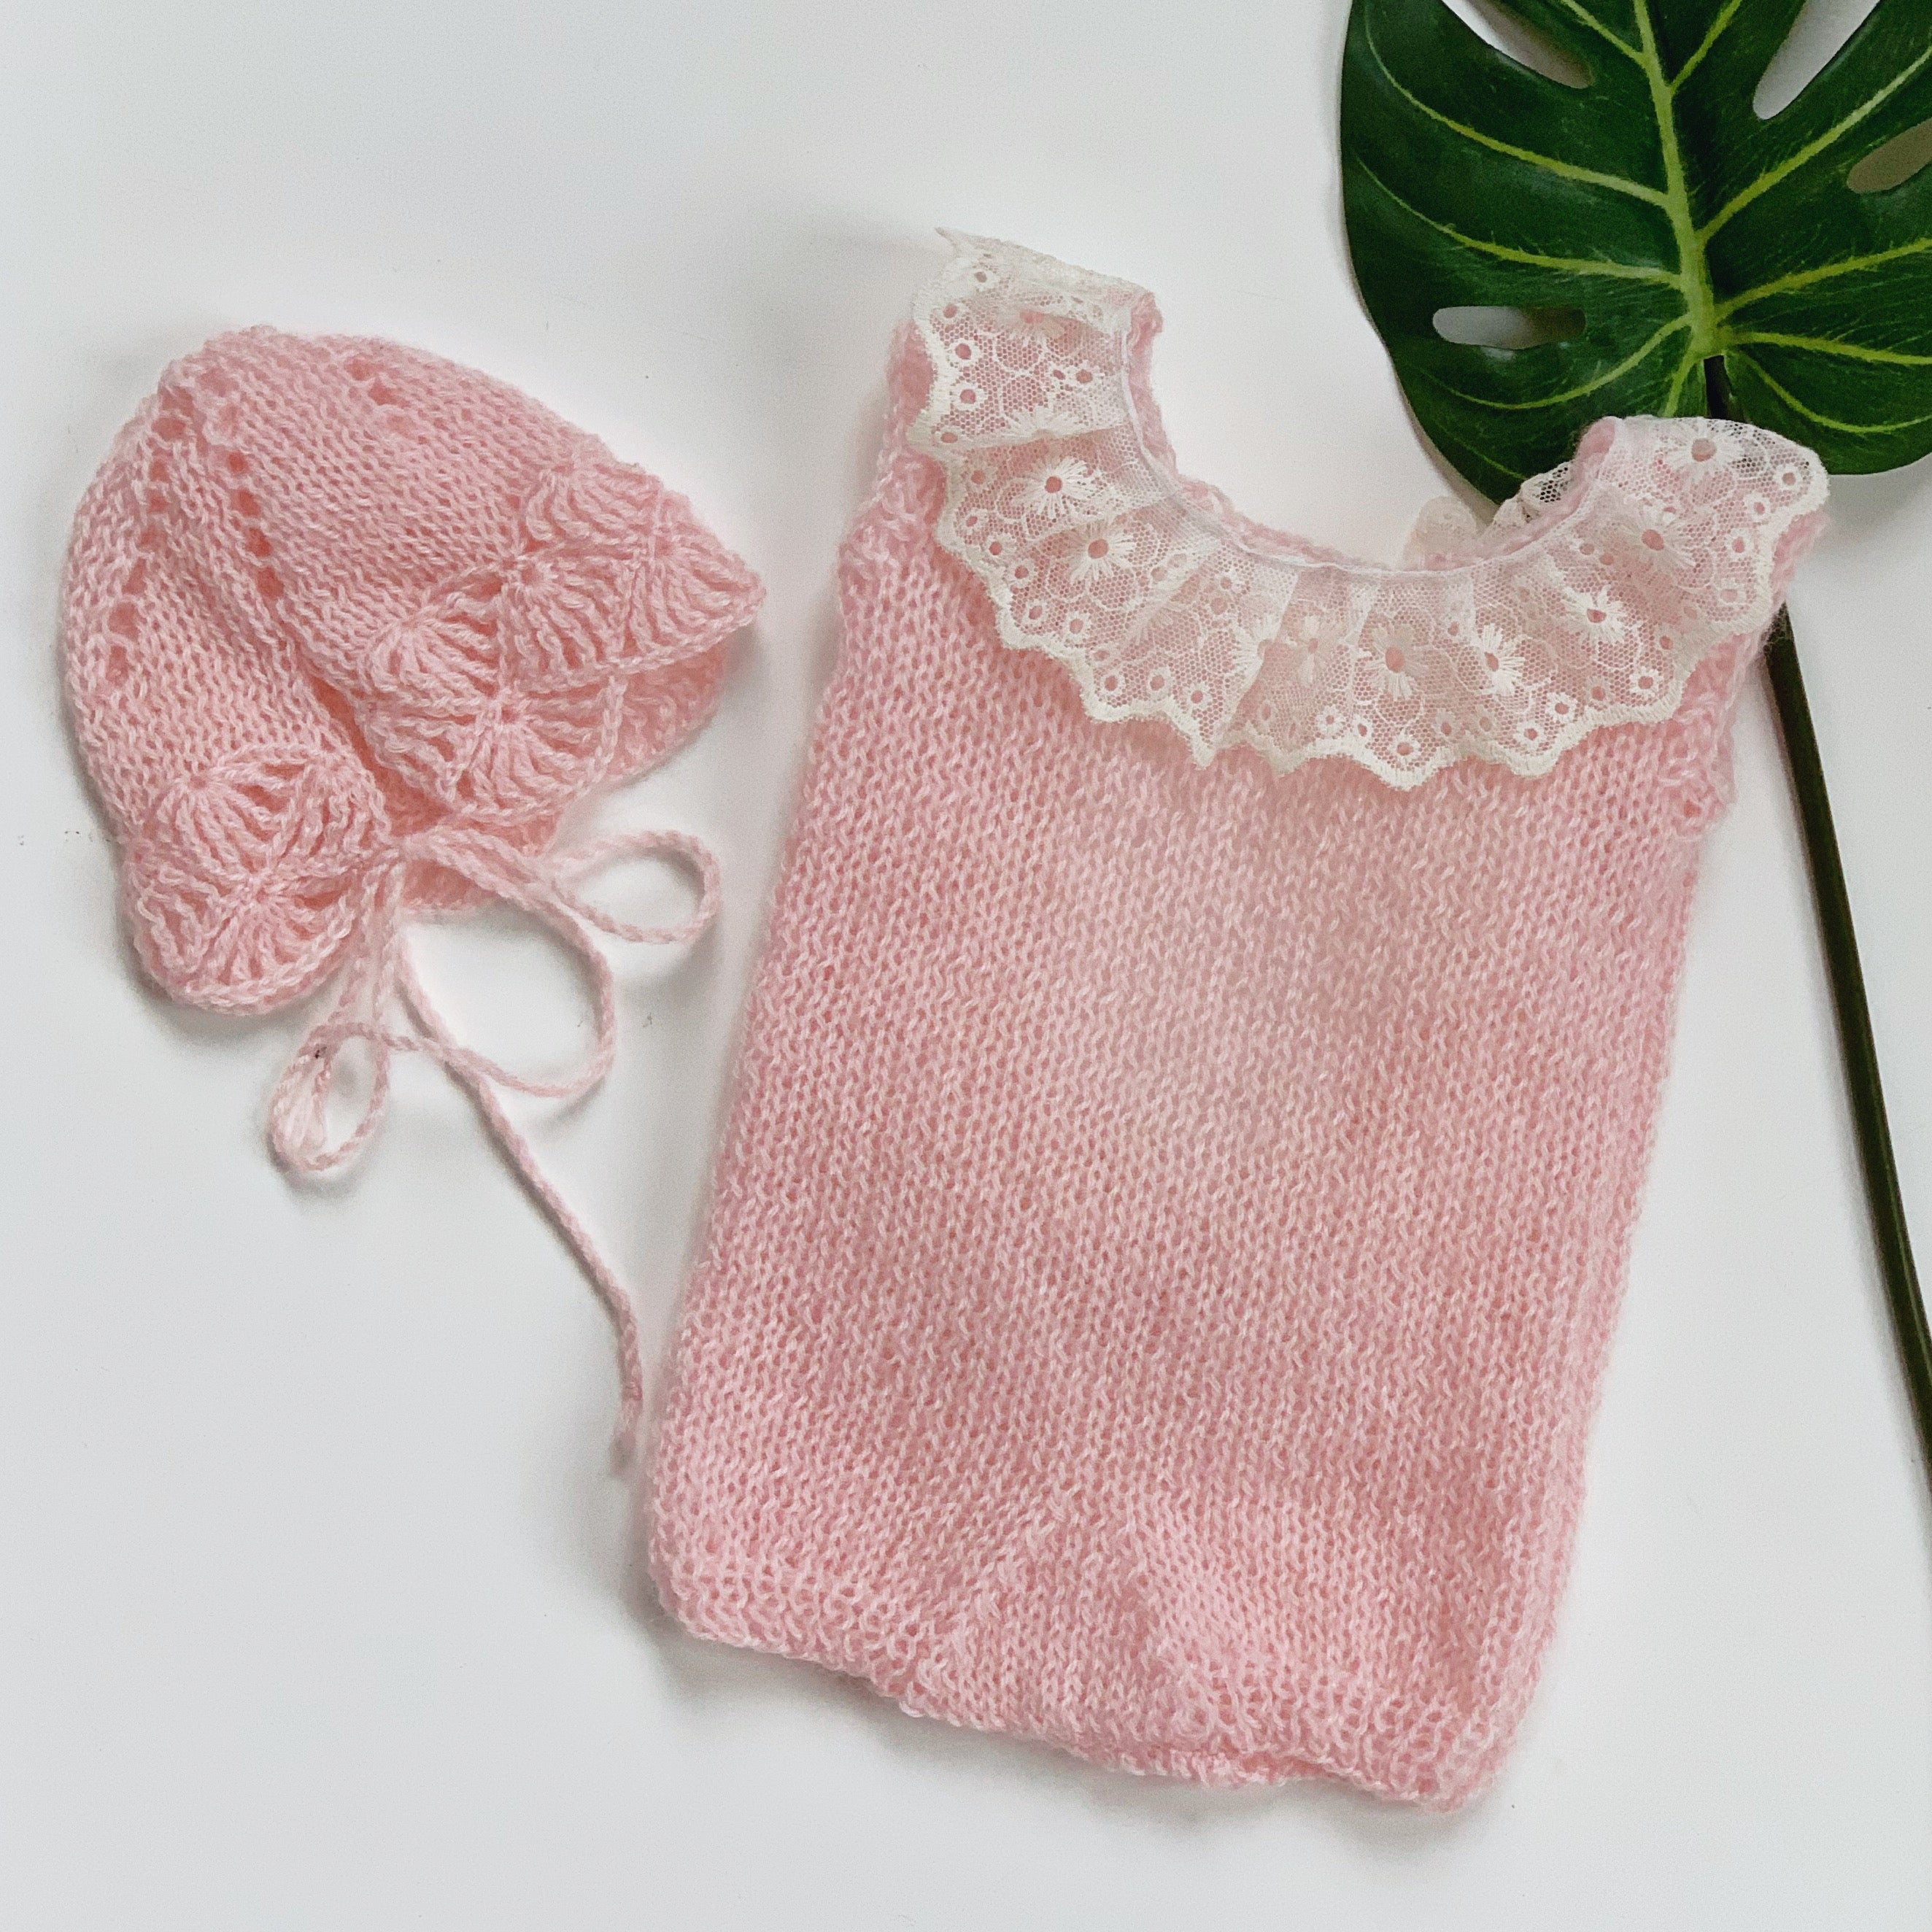 Mina Baby Romper - Babies - Itty Bitty Toes